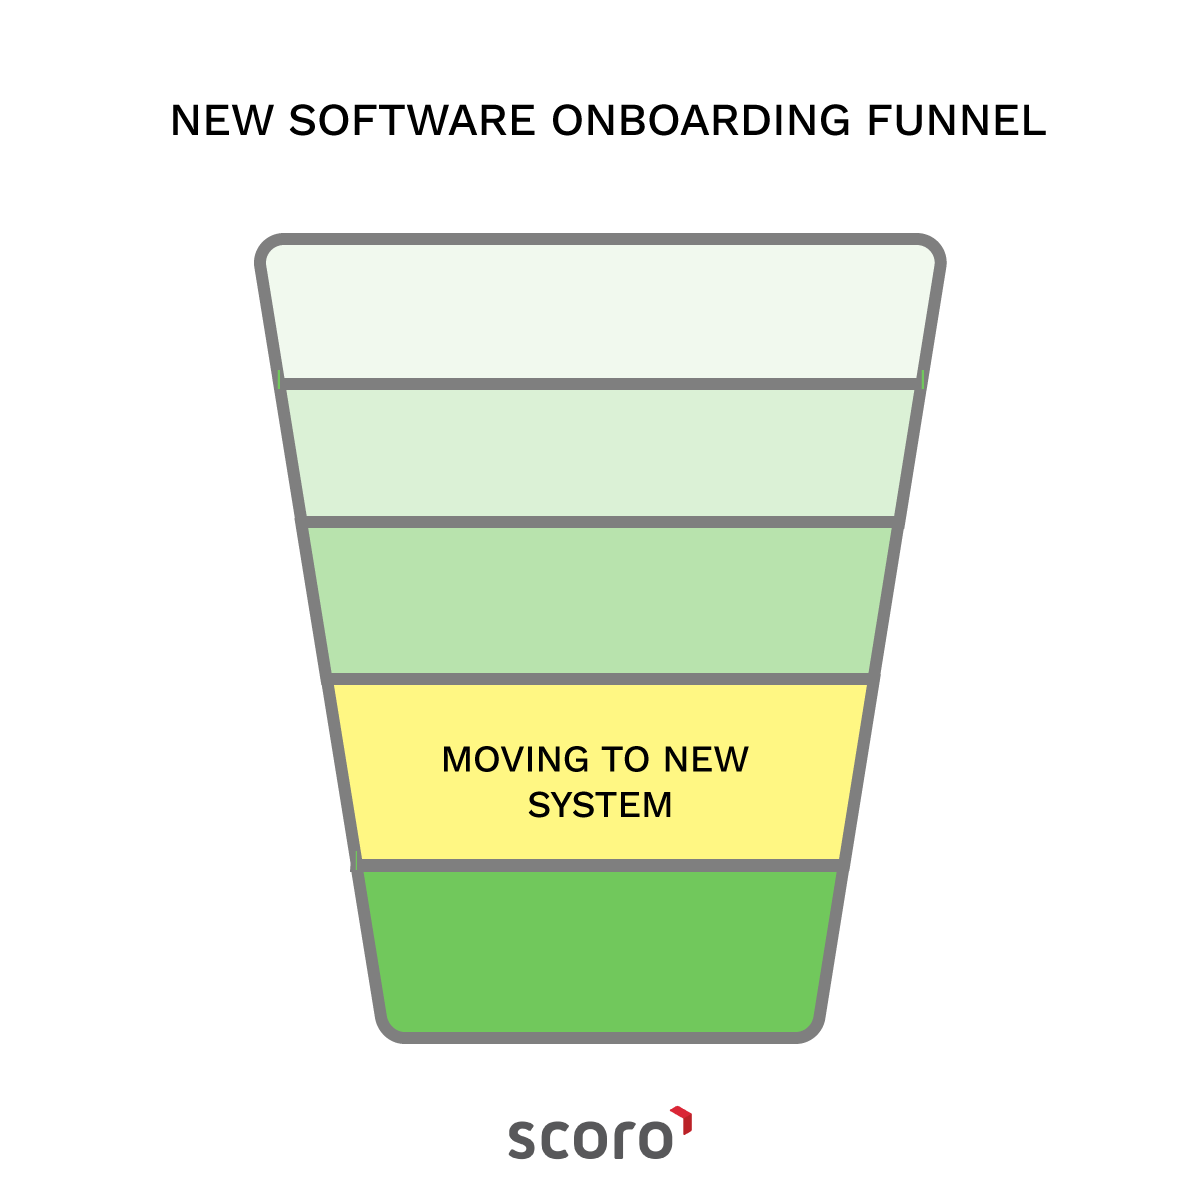 new software onboarding funnel moving to new system